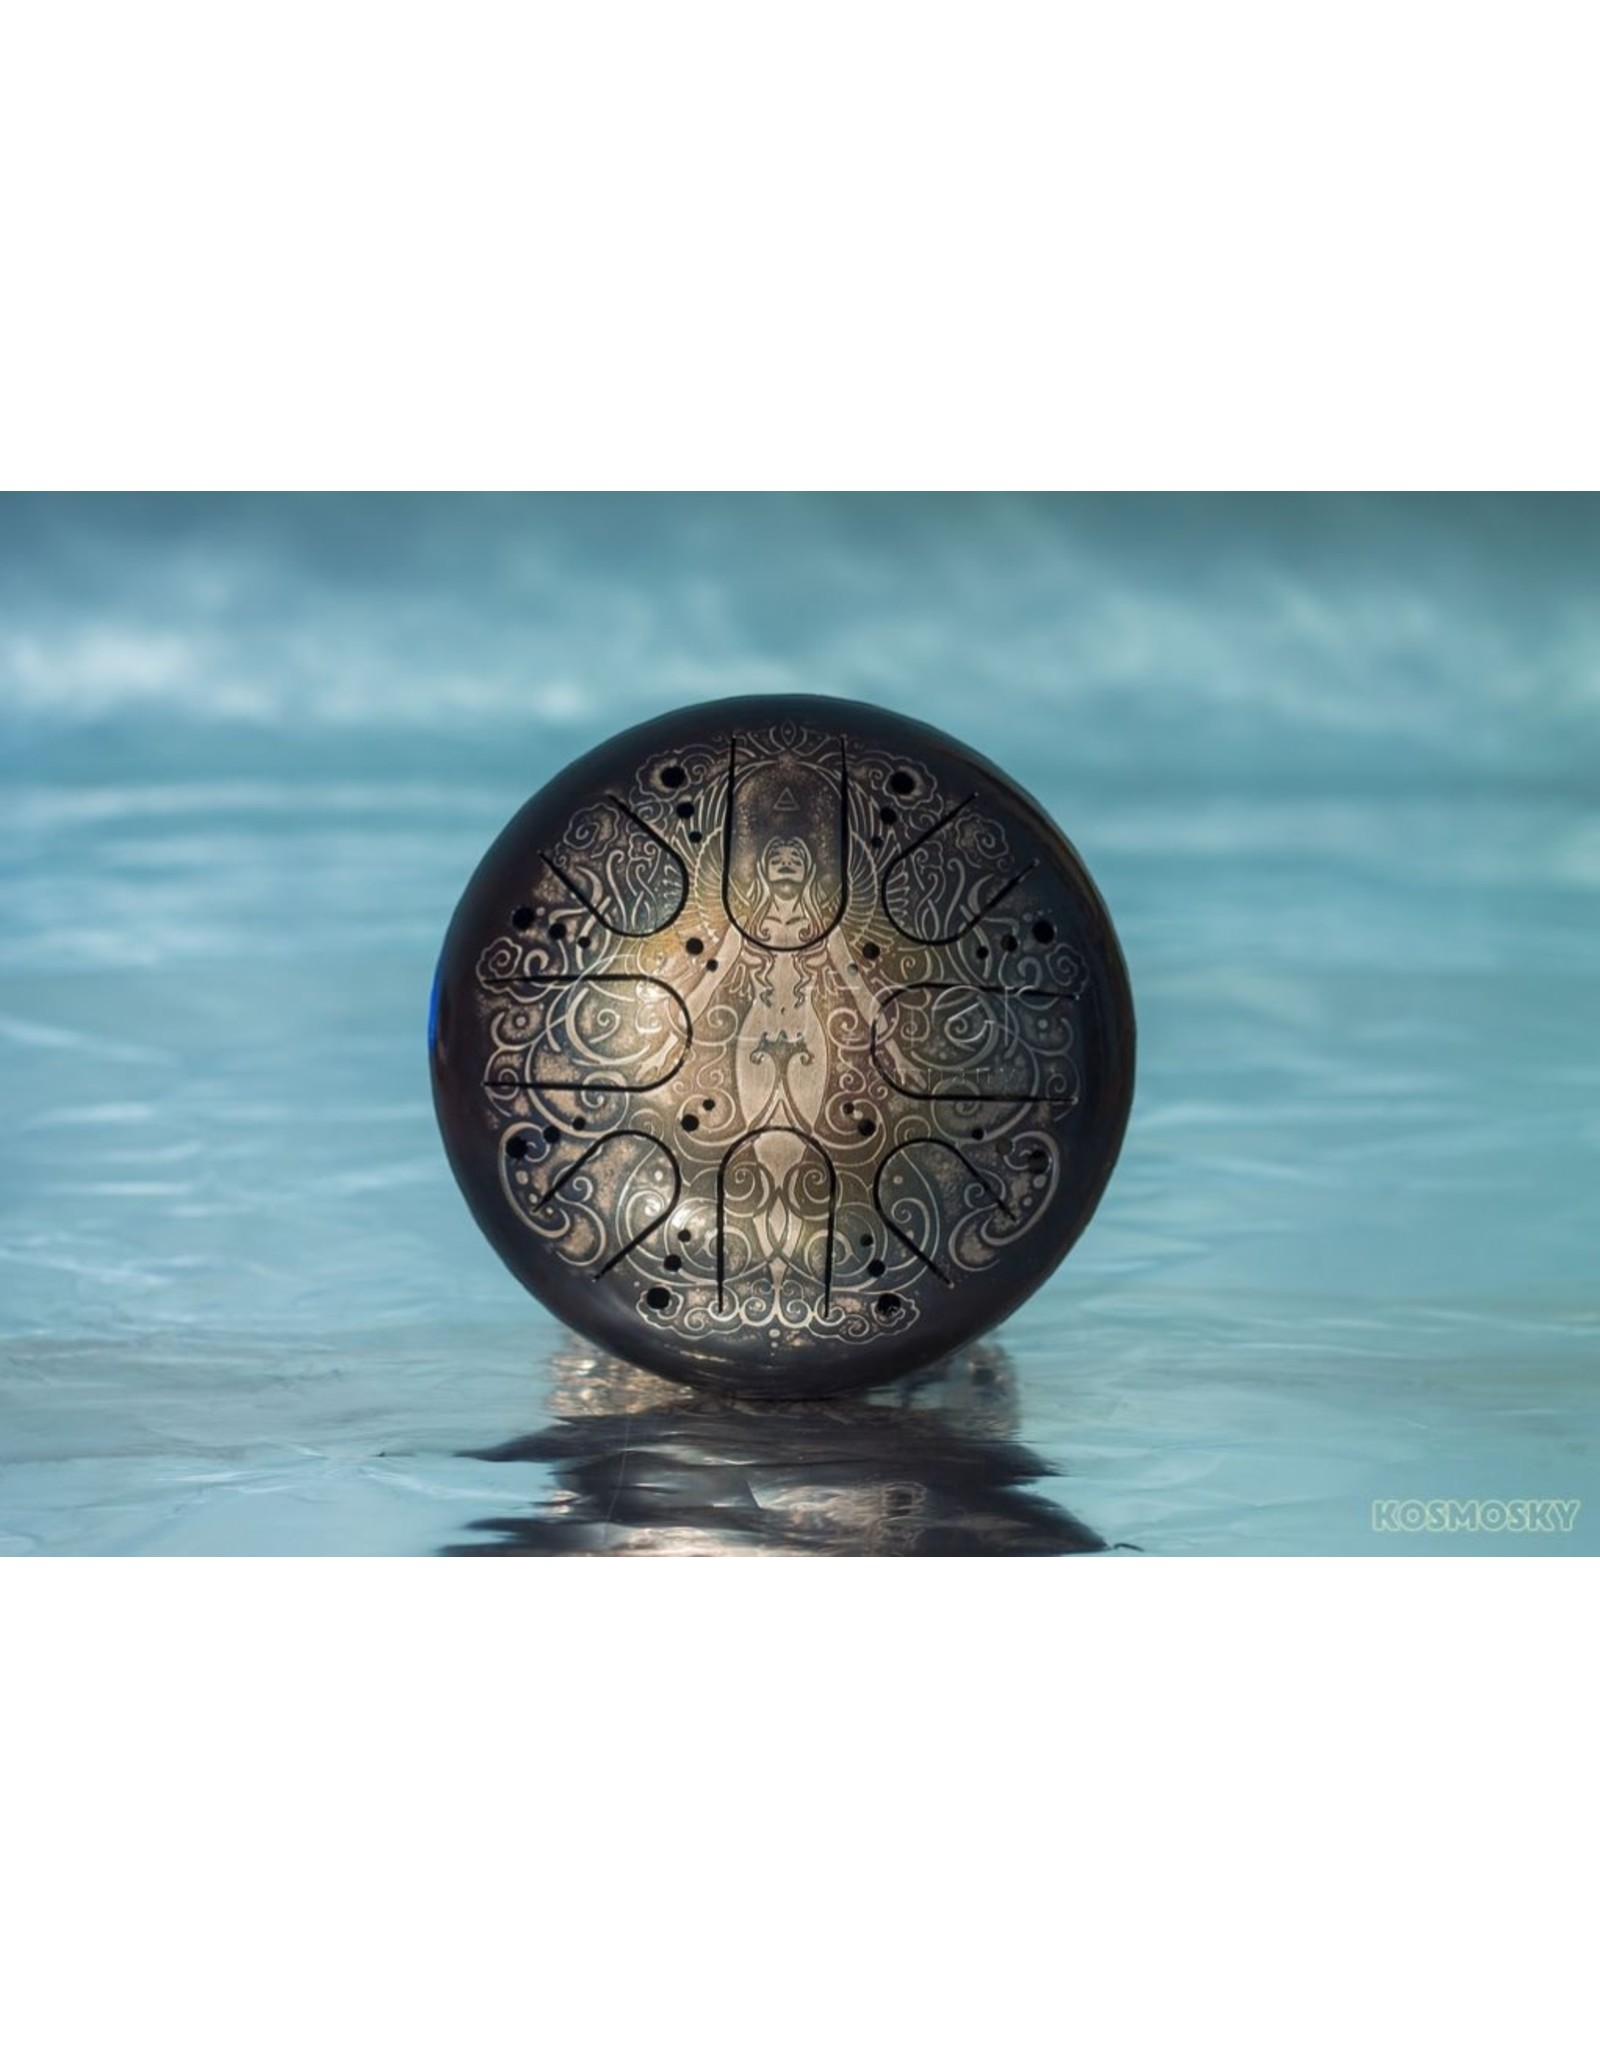 Steel tongue drum 22cm, Kosmosky